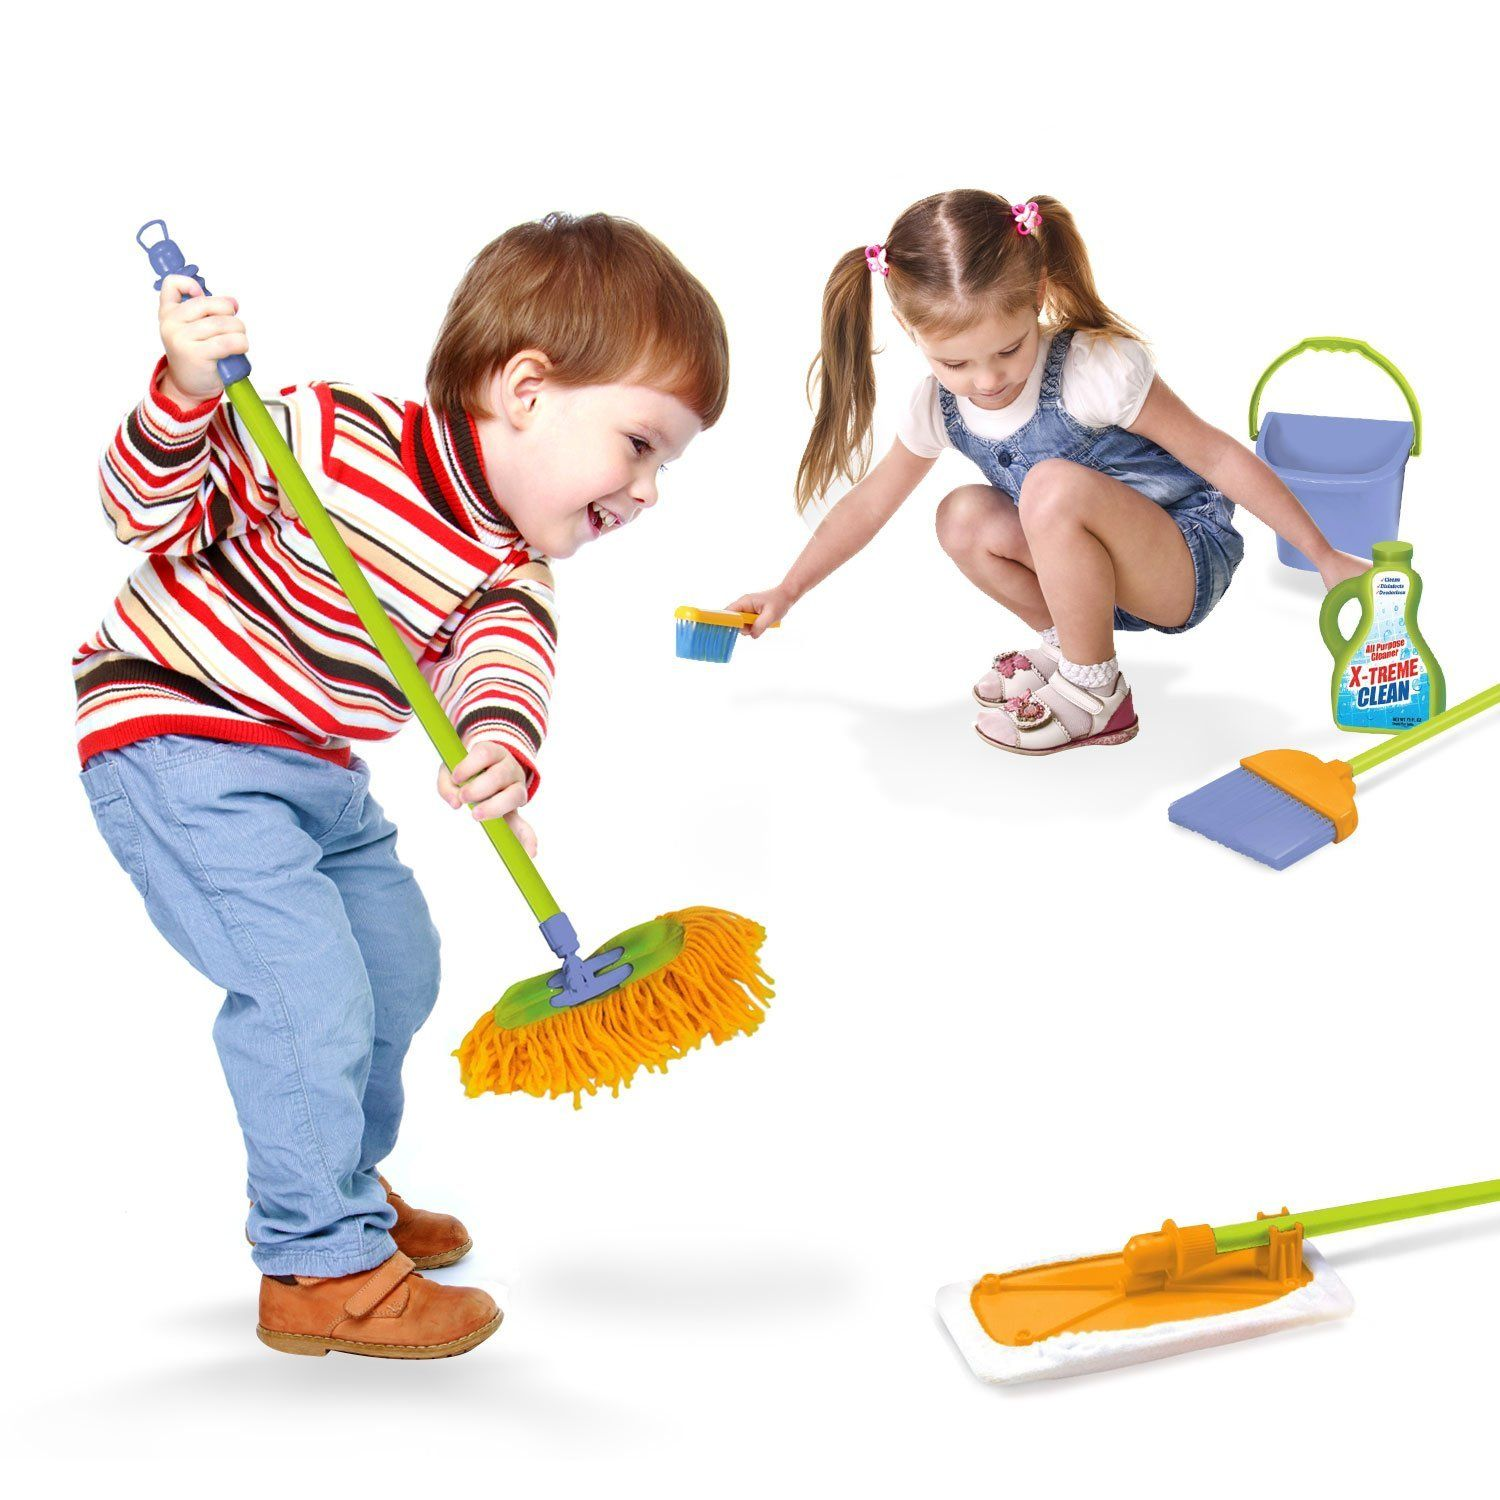 Amazon.com: Kidzlane Kids Cleaning Set For Toddlers Up To